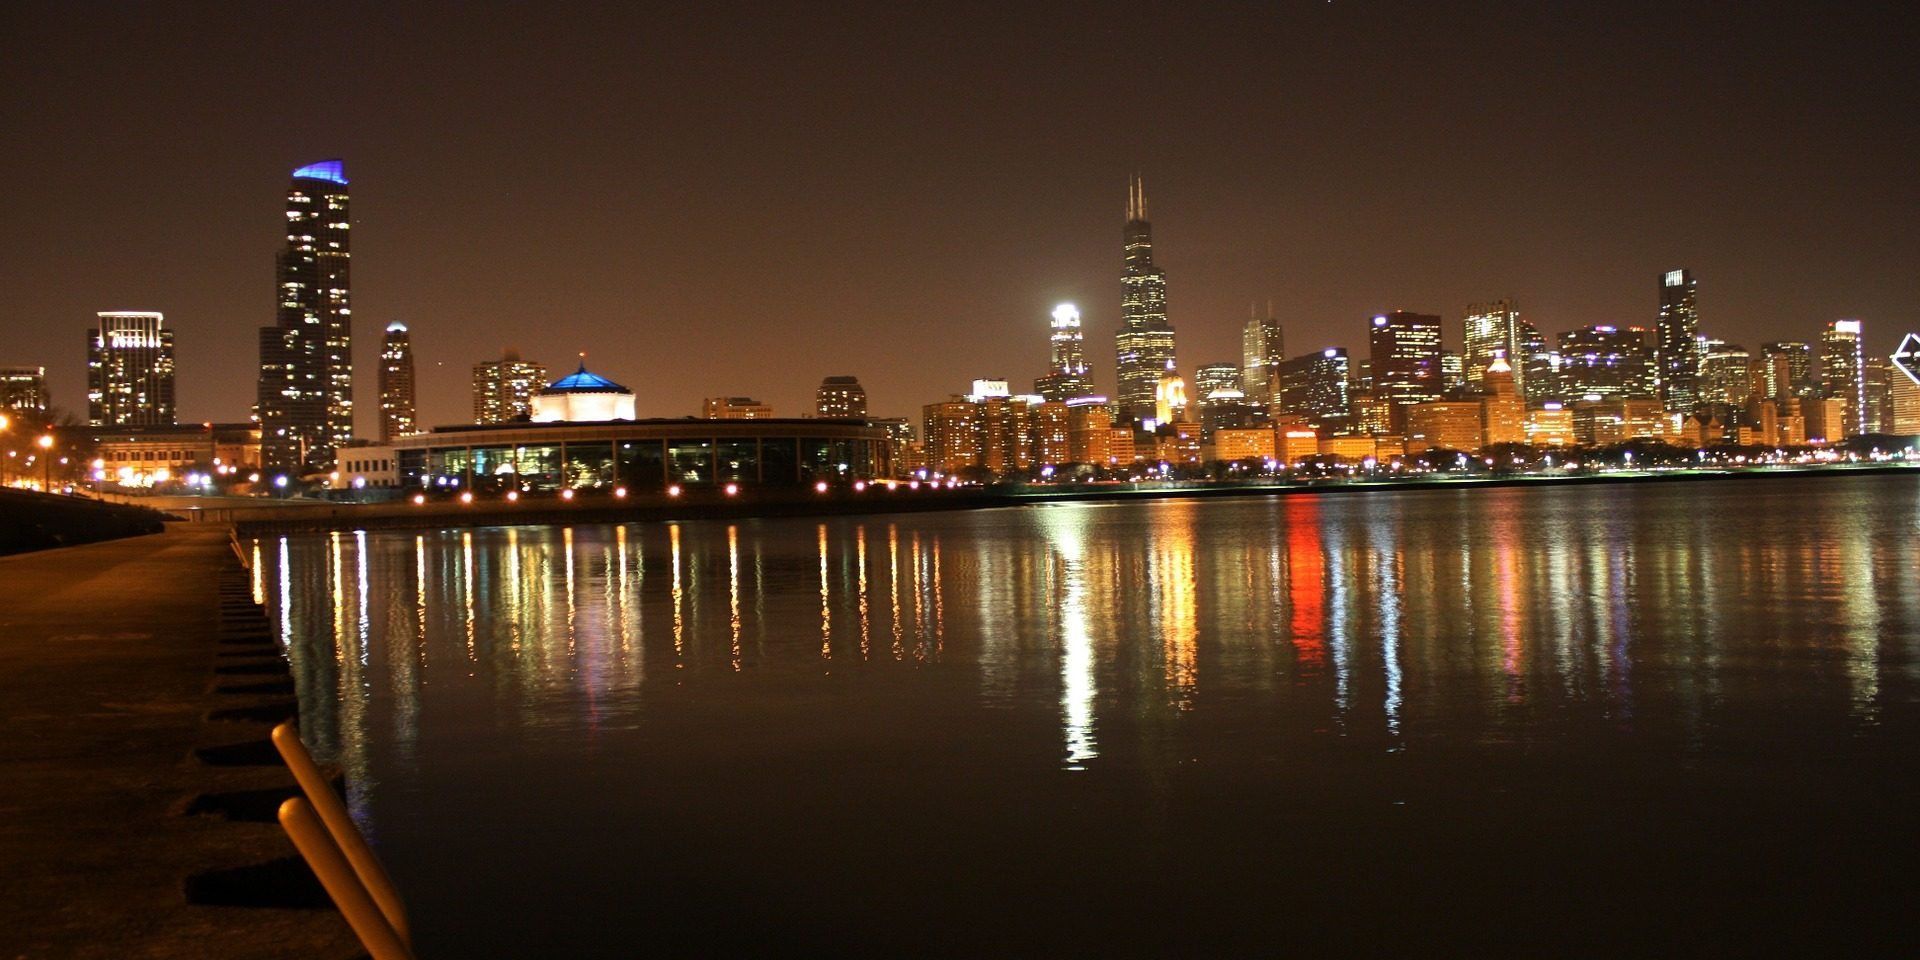 chicago-night-75293_1920